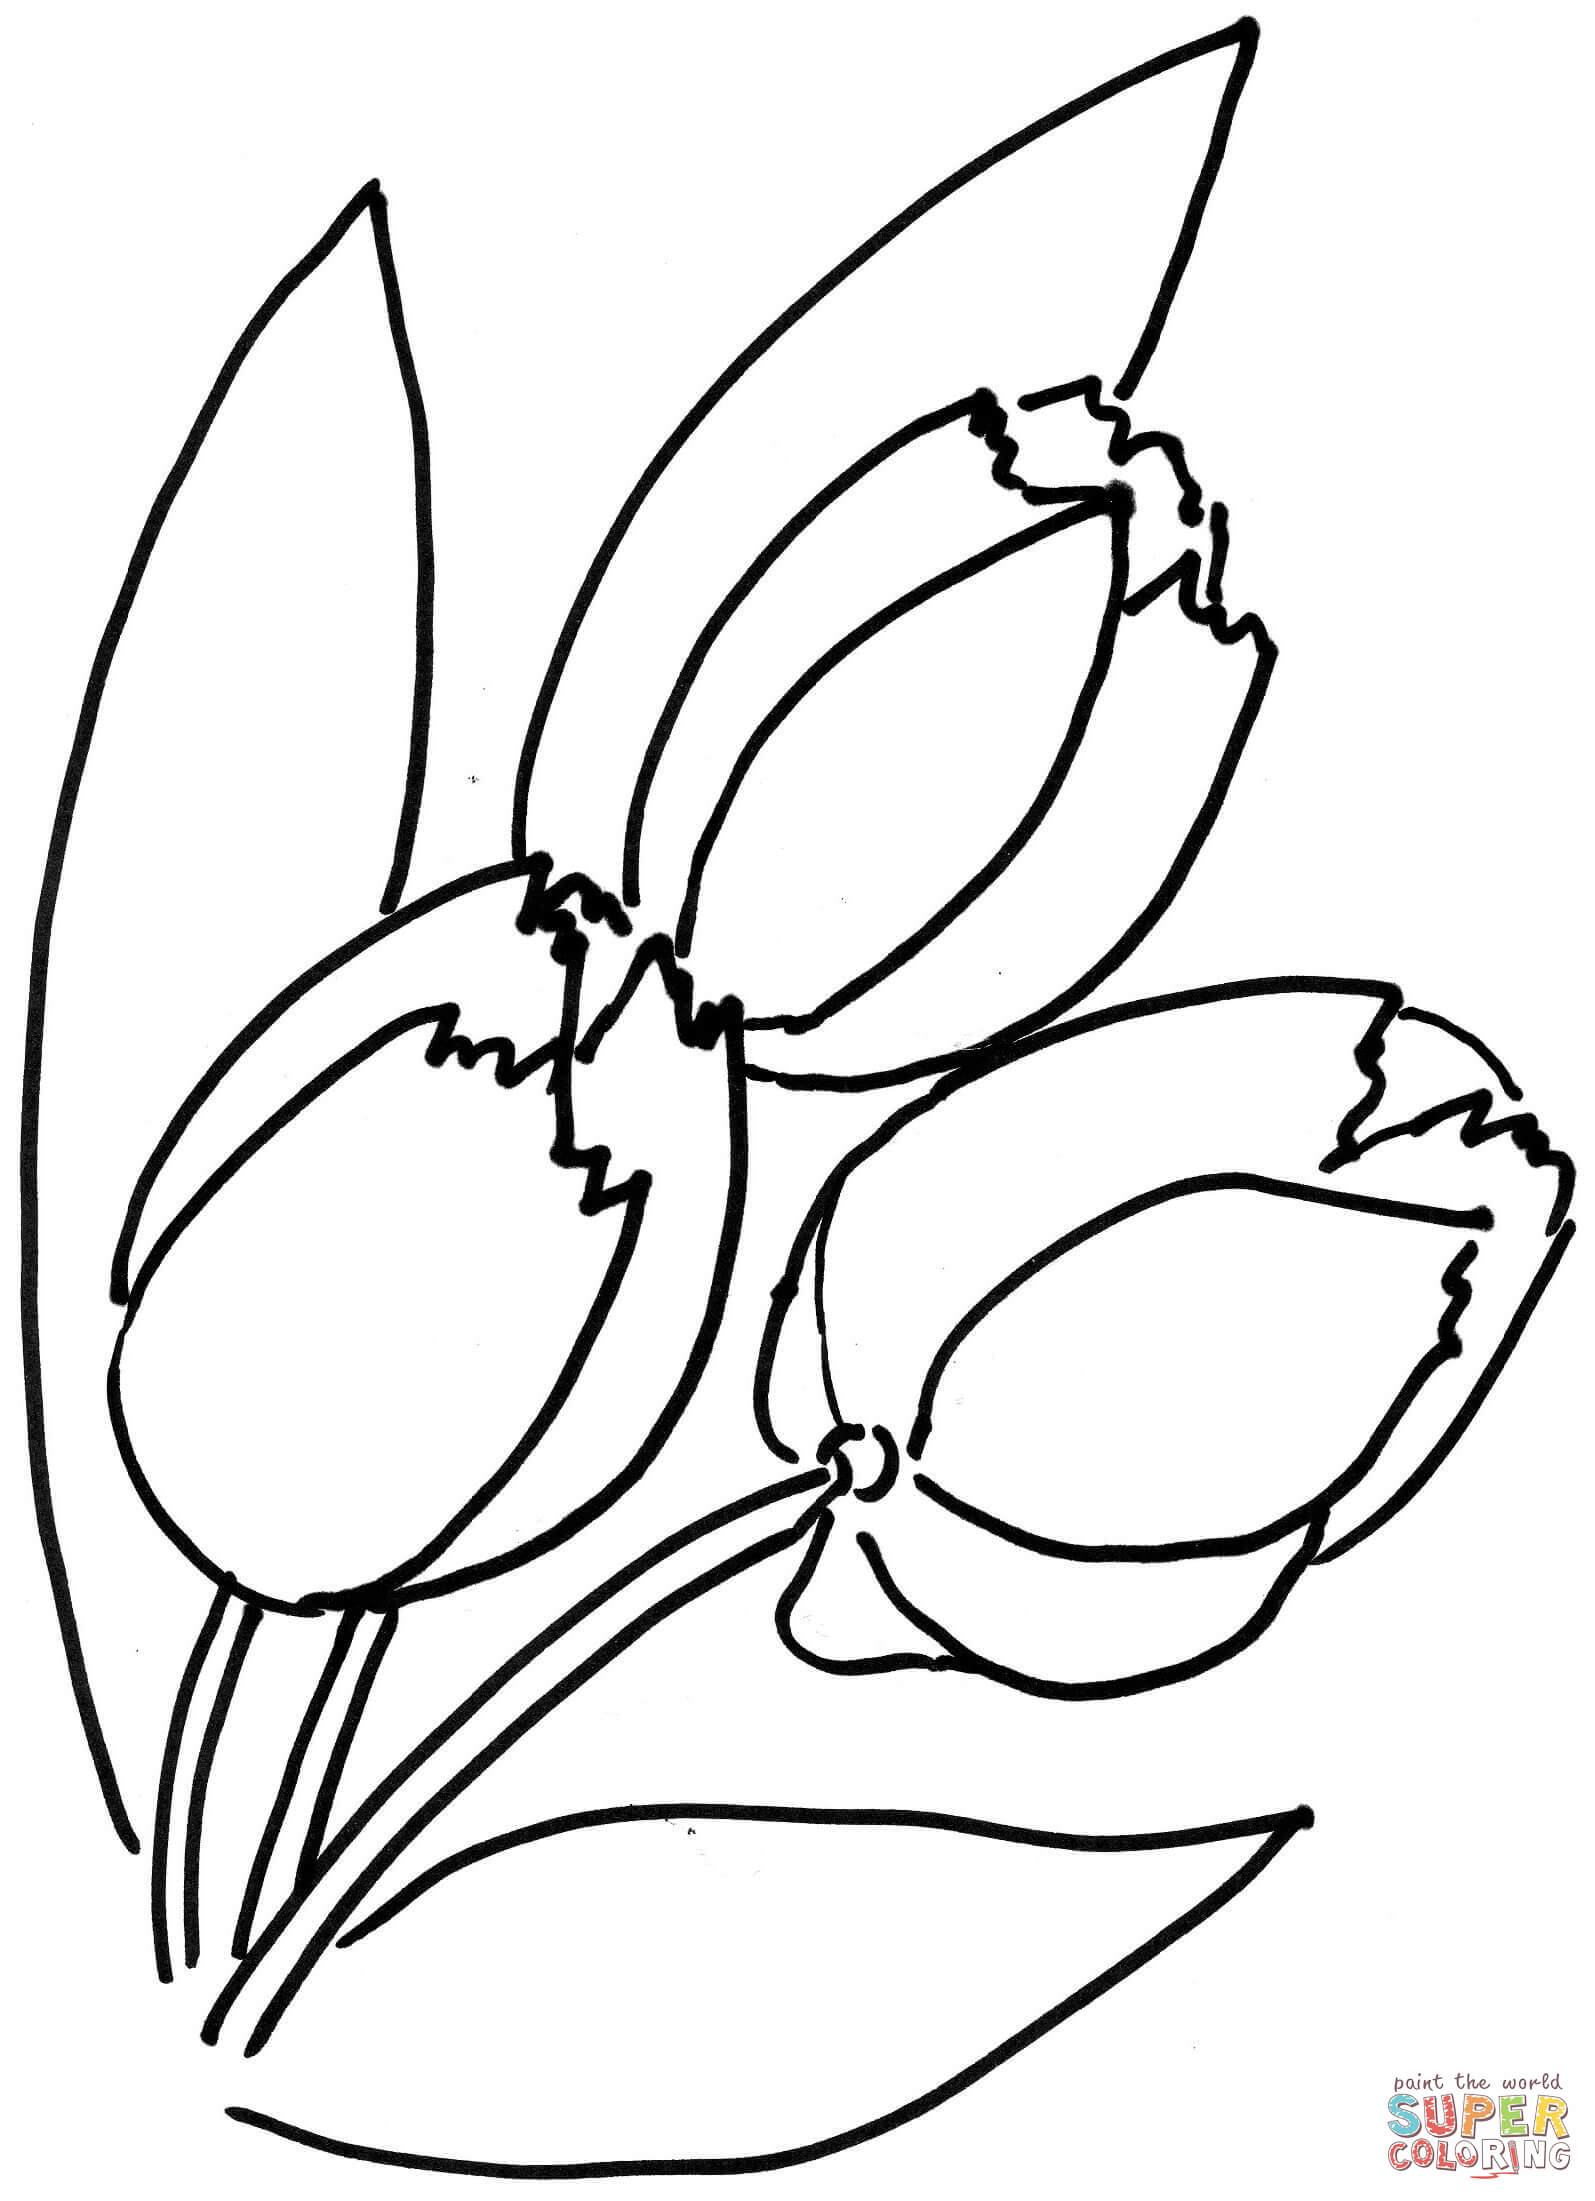 tulip flower coloring pages tulip coloring pages tulip flower pages coloring